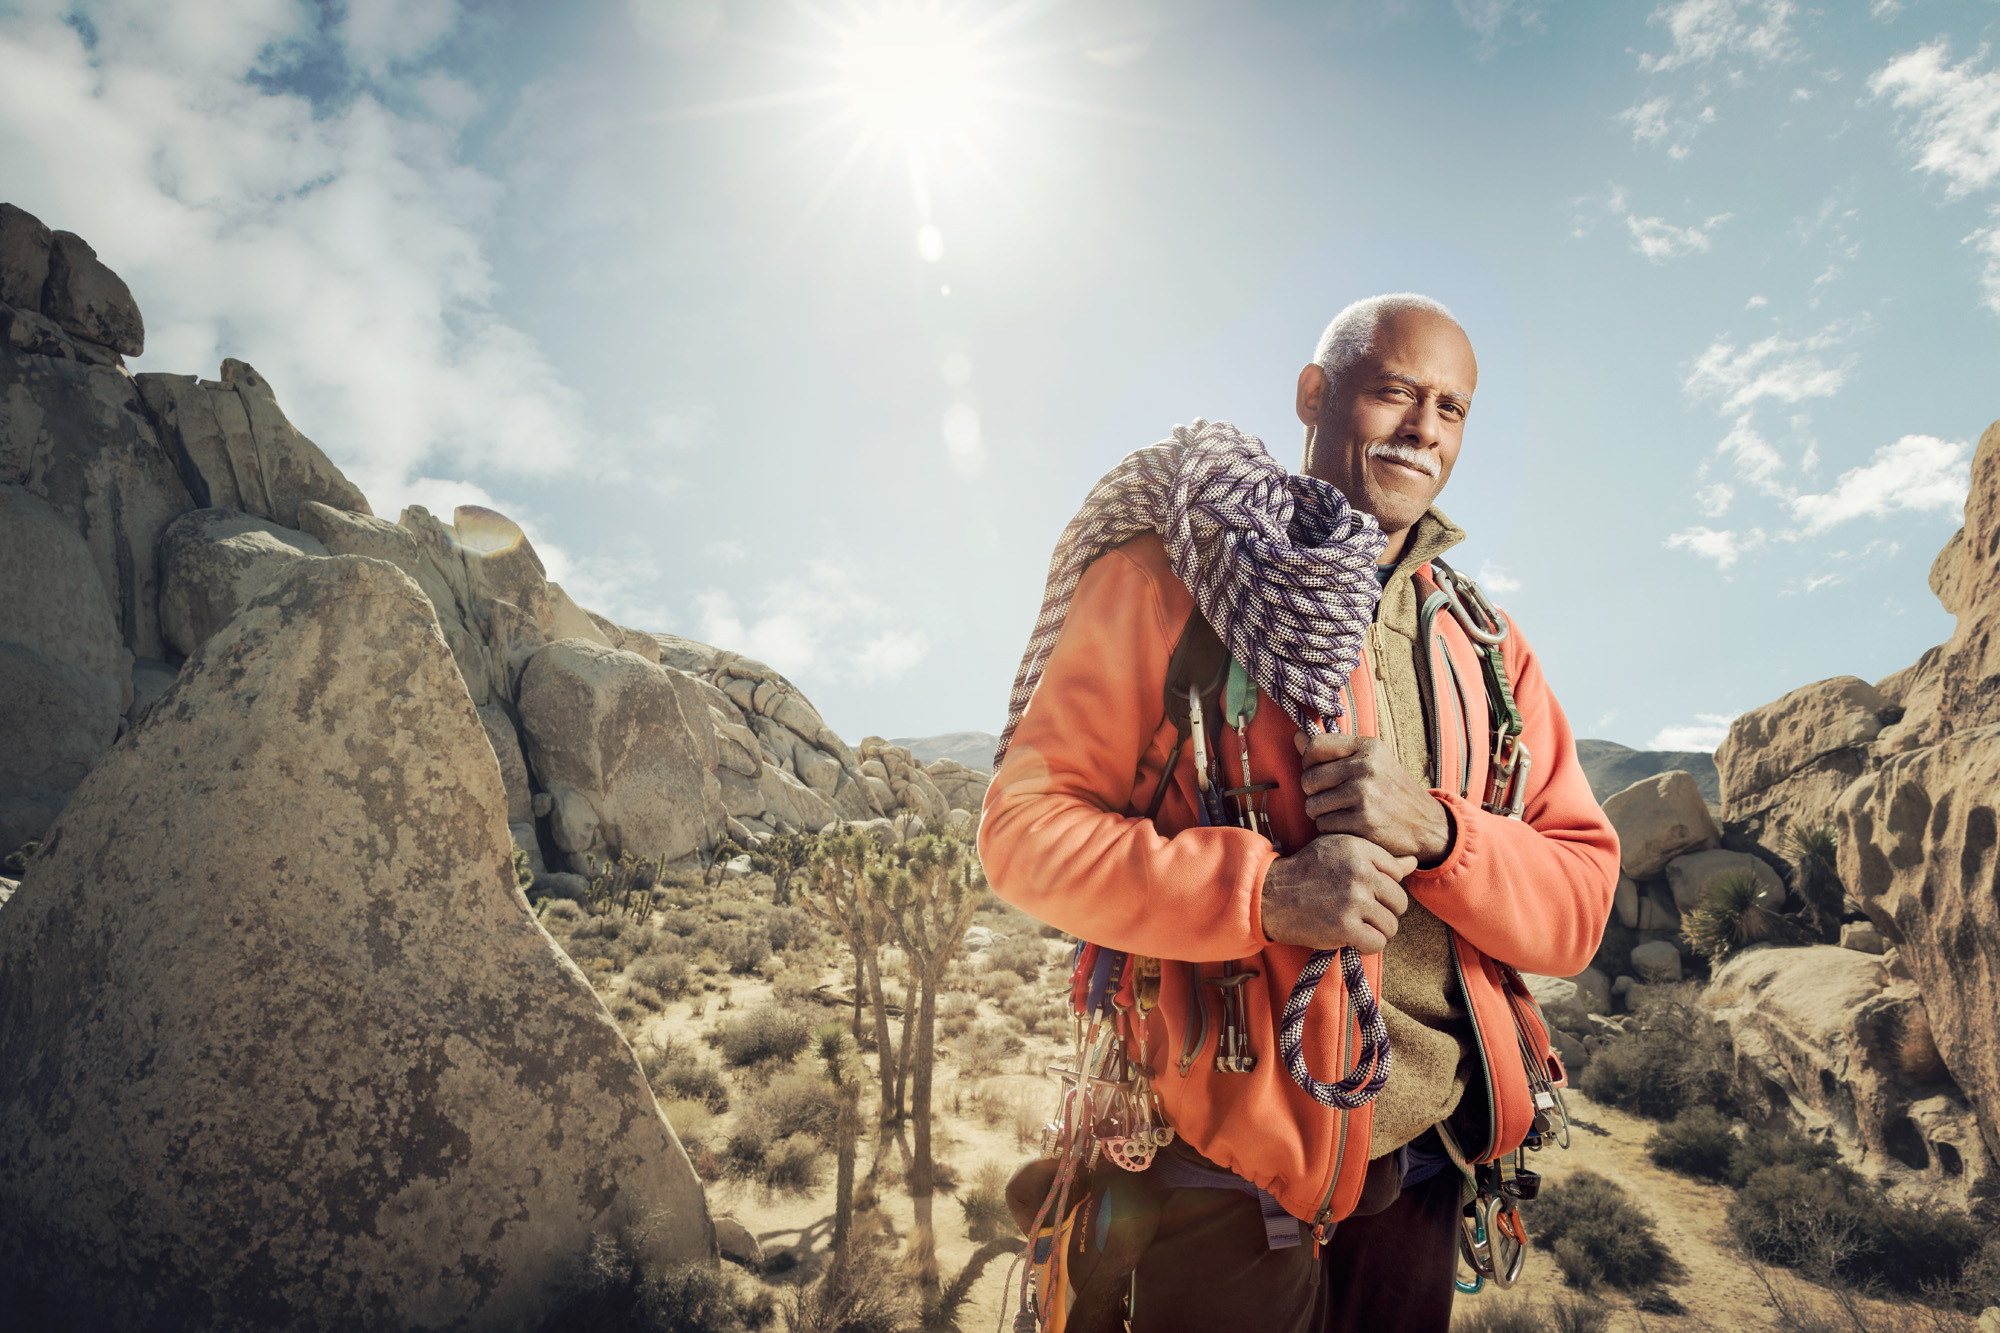 cc2015043 - Stephen Shobe, climber, for AARP The Magazine